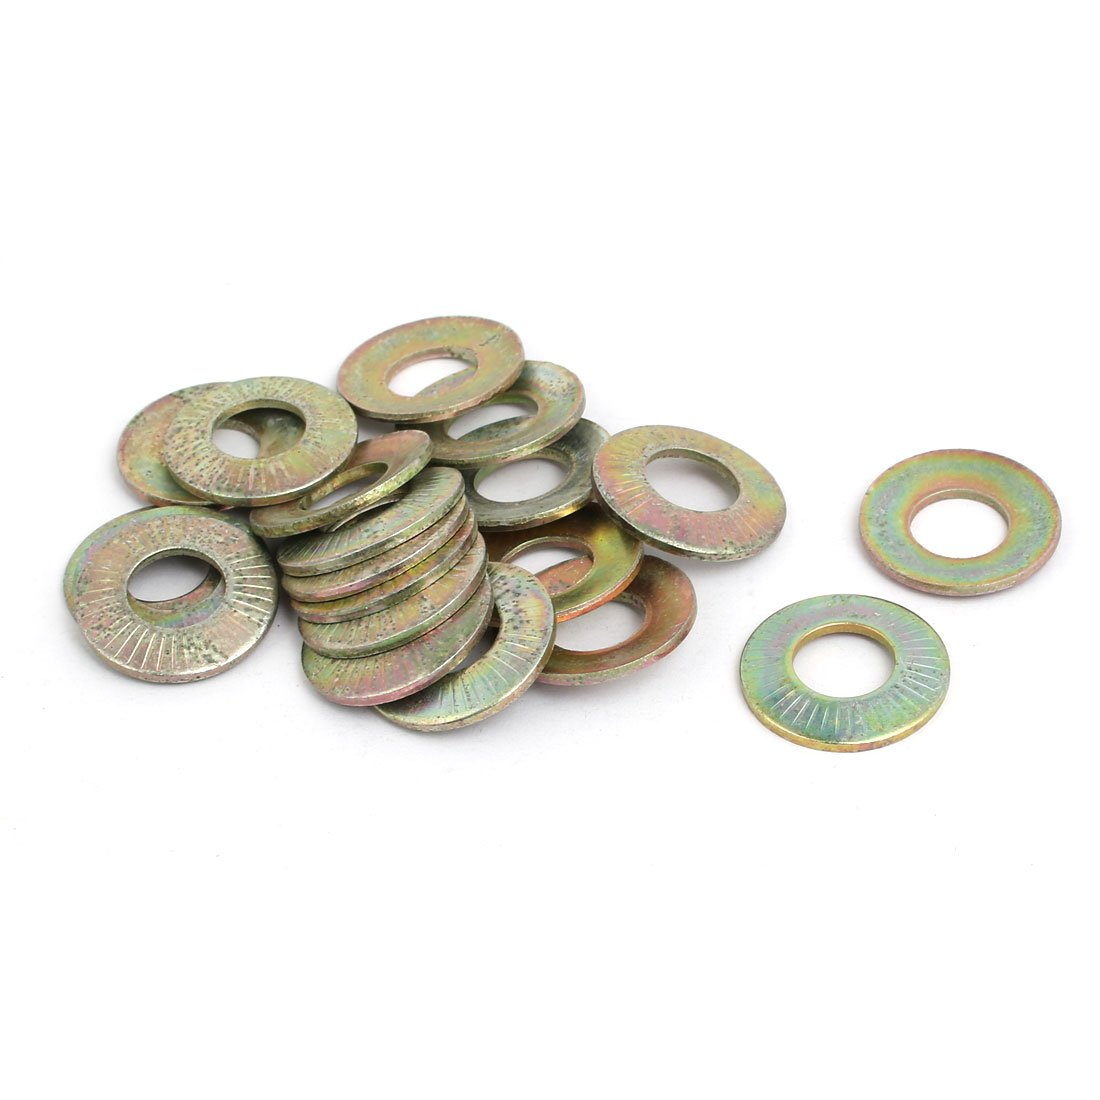 uxcell M10 Inner Dia Carbon Steel Serrated Conical Spring Washer Bronze Tone 20pcs a17062100ux1458